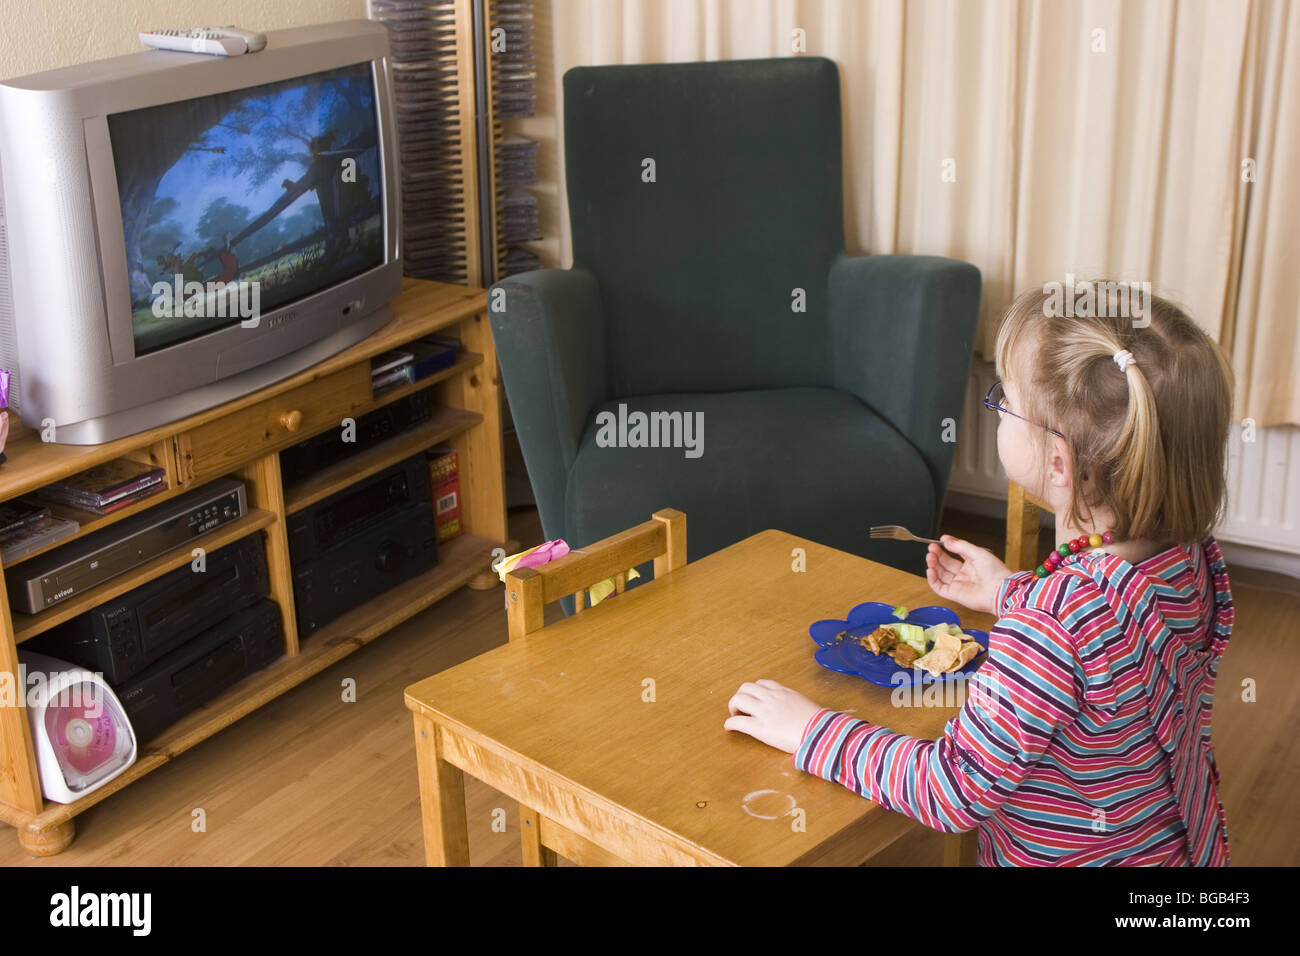 Little girl watching DVDs on television tube in living room, while eating main dinner in front of the tv, shootcvs517003. - Stock Image